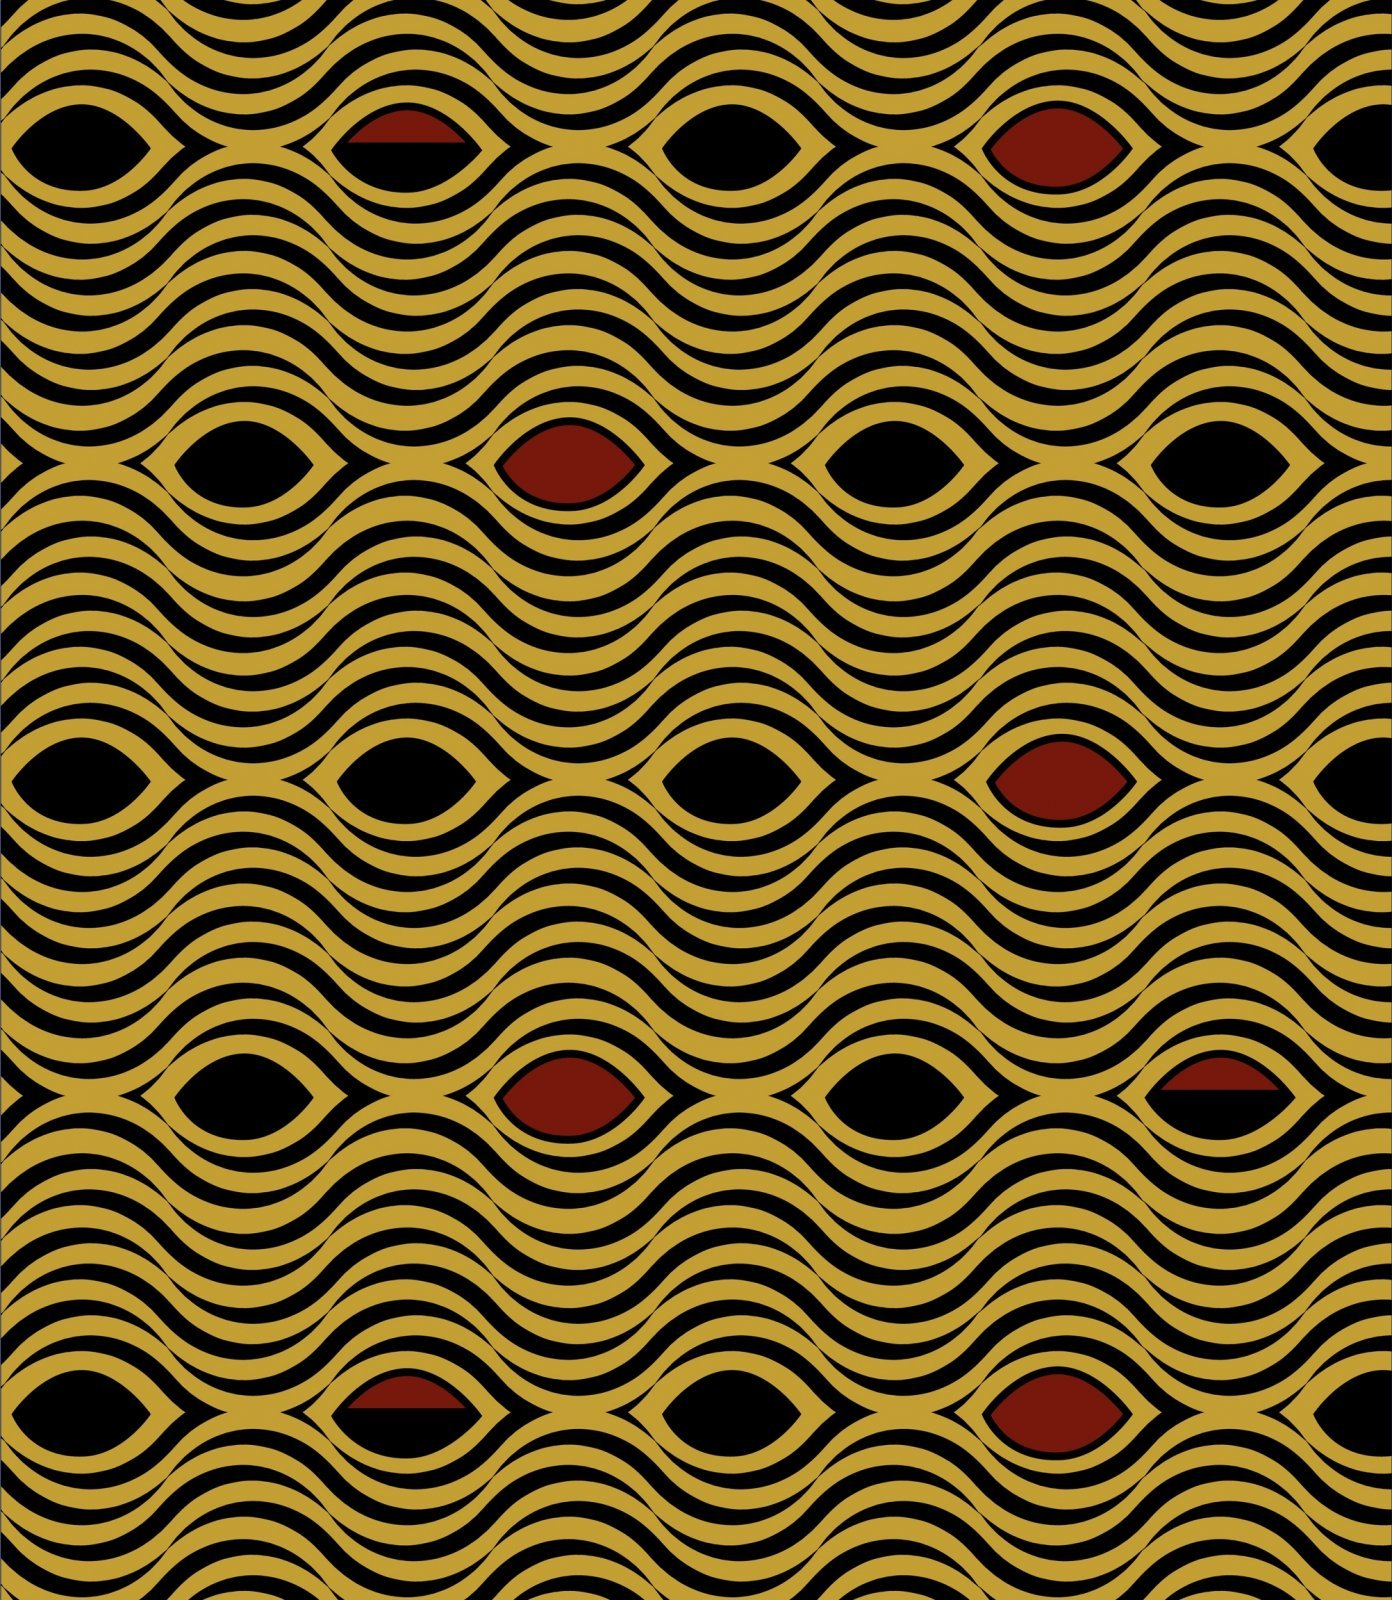 African Waves 2123 Yellow